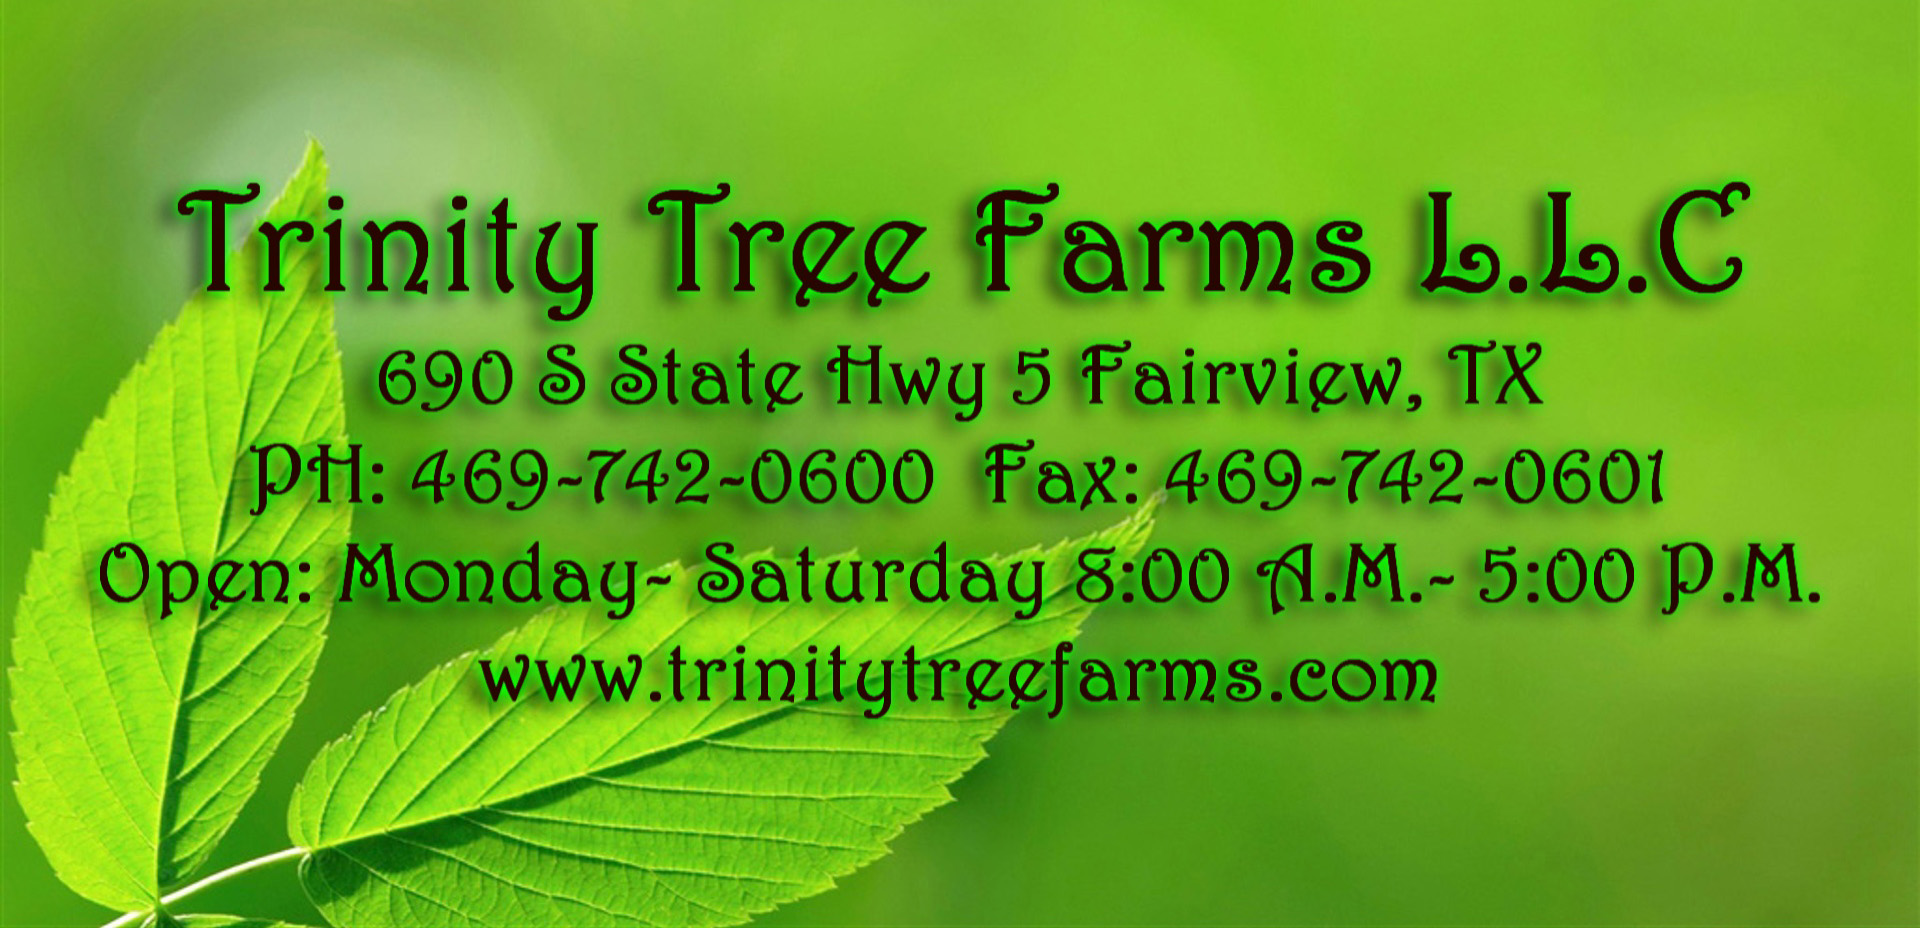 Trinity Tree Farms